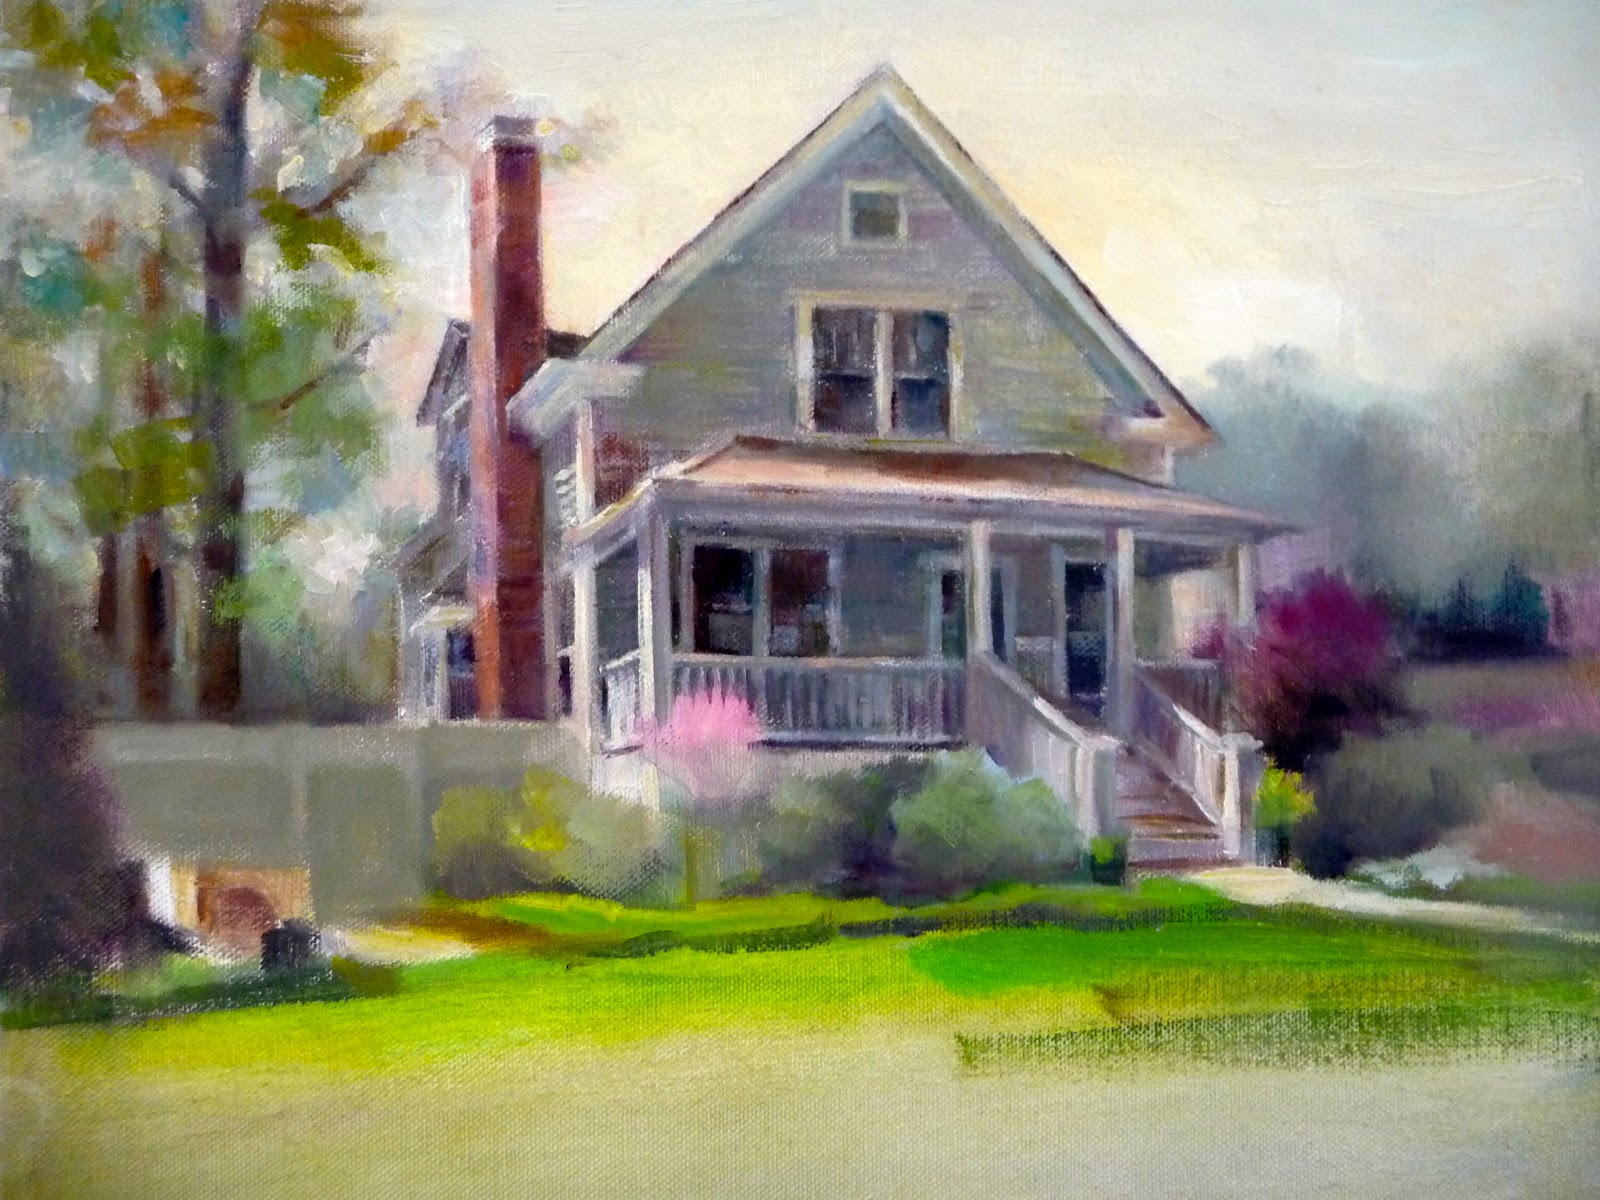 Home sweet home painting -  Line On The Right Side Of The Painting In The Reference Photos You Can See Another House On The Right Side Which I Did Not Include In My Composition